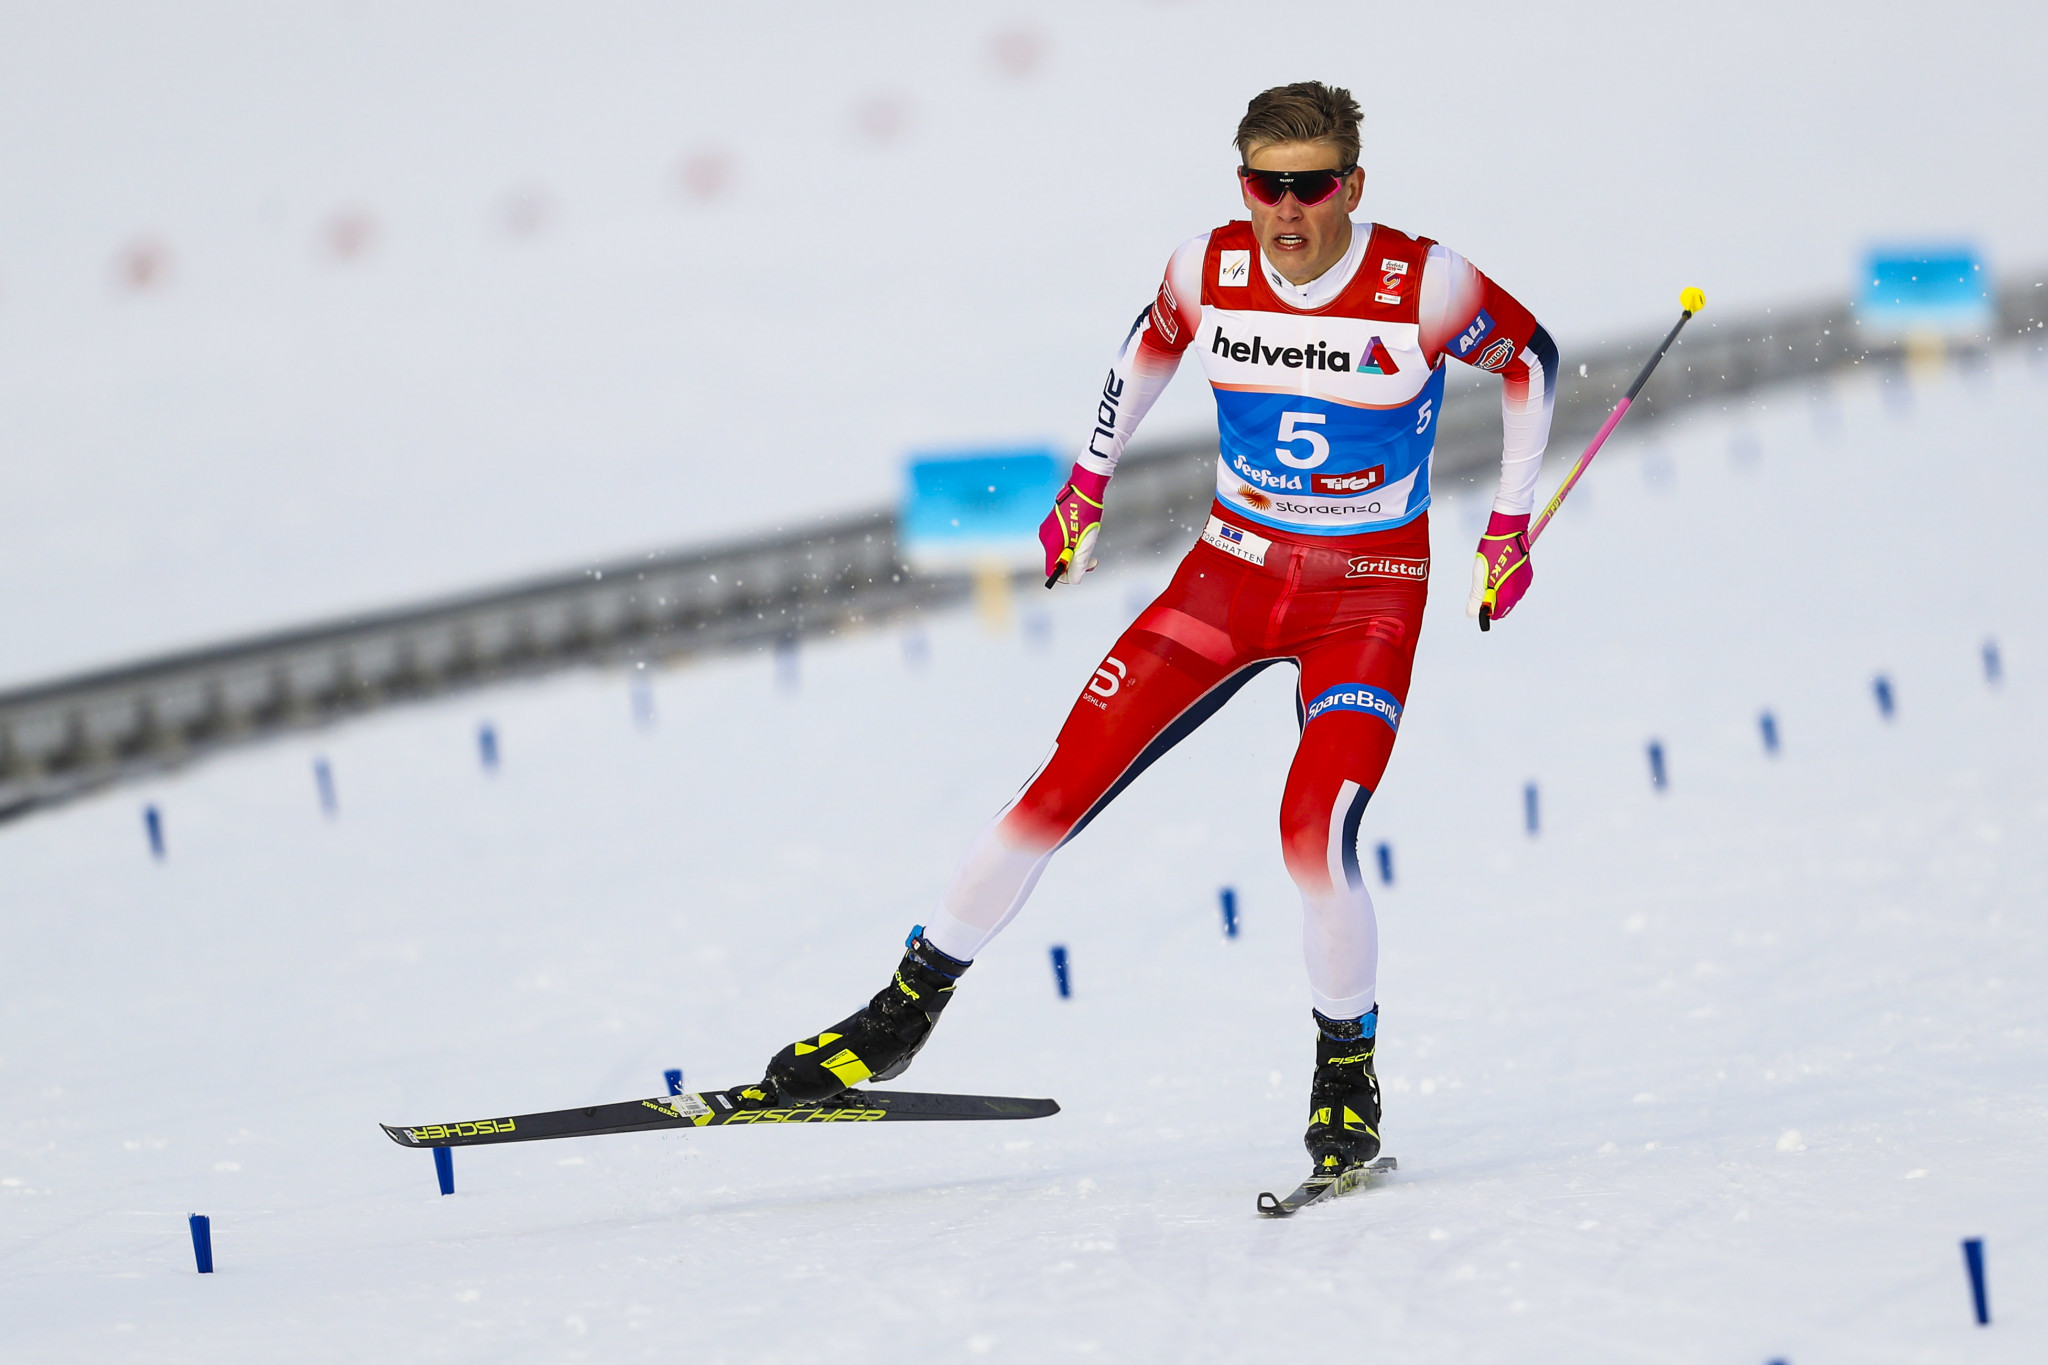 Norway gained their second gold when Johannes Hoesflot Klæbo continued his incredible form to win the men's race ©Getty Images